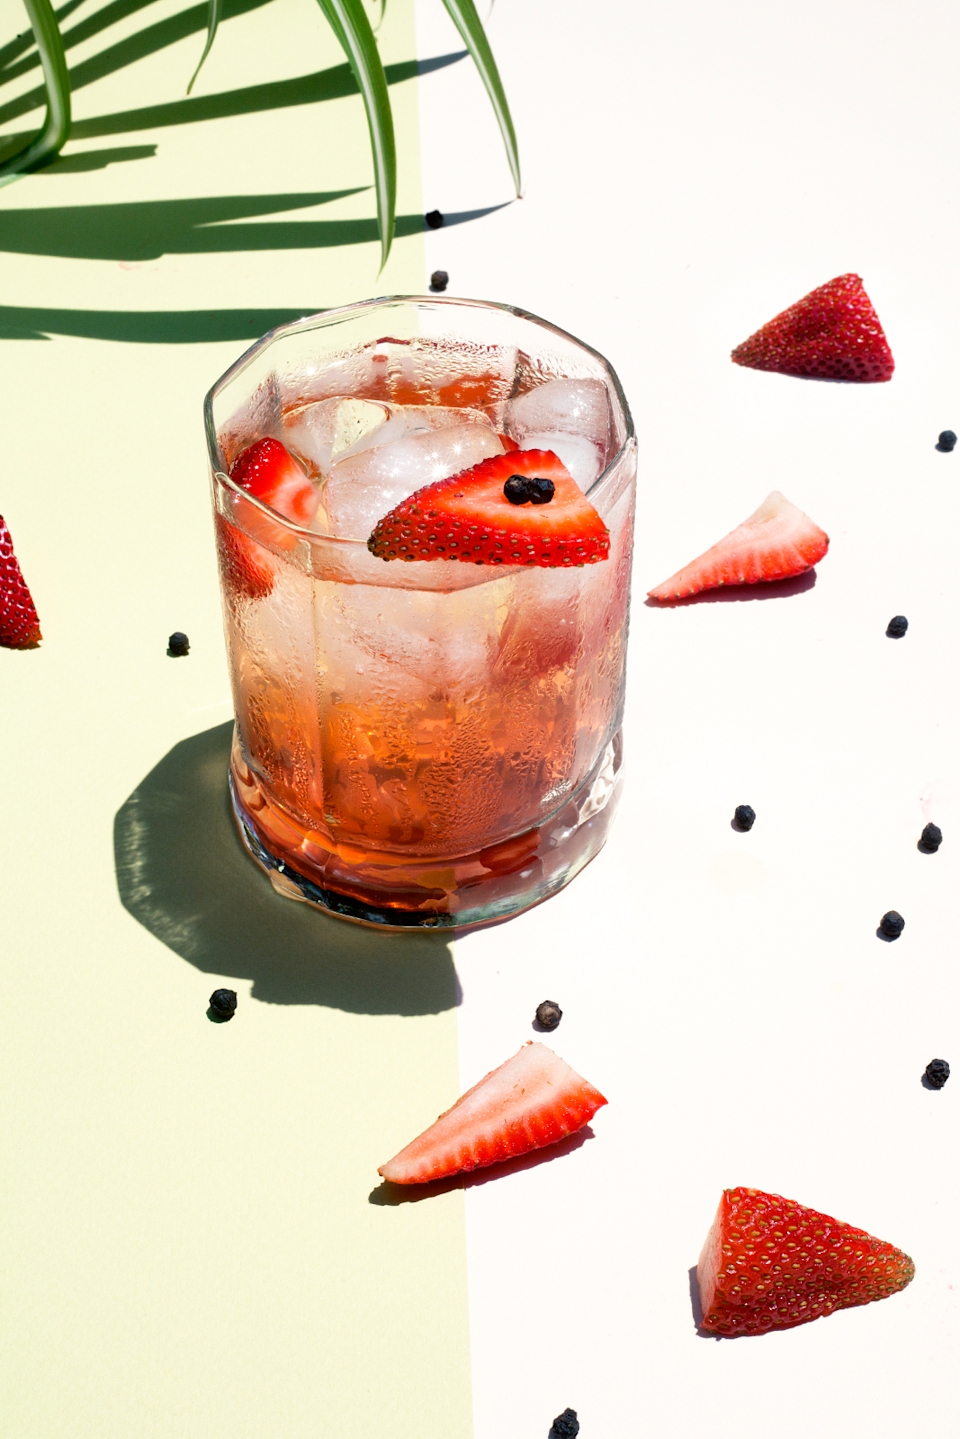 """<strong>Strawberry & Black Pepper</strong><br><br>An ideal combination for a hot summer's day, make the most of British strawberries while they are in season. The hint of black pepper adds an element of spice, and compliments the fruity sweetness.<br><br>The flavour of strawberry is best paired with the citrus and floral notes of <a href=""""http://www.waitrose.com/shop/ProductView-10317--115845-Bloom+London+Gin"""" rel=""""nofollow noopener"""" target=""""_blank"""" data-ylk=""""slk:Bloom premium London dry gin"""" class=""""link rapid-noclick-resp"""">Bloom premium London dry gin</a>. Bloom is made in Britain's oldest distillery (est. 1791), headed up by Master Distiller, Joanne Moore.<br><br><strong>Ingredients (Makes 1)</strong><br>50ml gin<br>4 strawberries<br>Black peppercorn grinder<br>Tonic water<br>Ice<br><br><strong>Method</strong><br>Muddle three of the strawberries with four twists of black pepper in the base of your glass. Fill with ice, stir and add the gin. Top with tonic, and garnish with sliced strawberry.<span class=""""copyright"""">Photographed by <strong>Roxana Azar</strong></span>"""